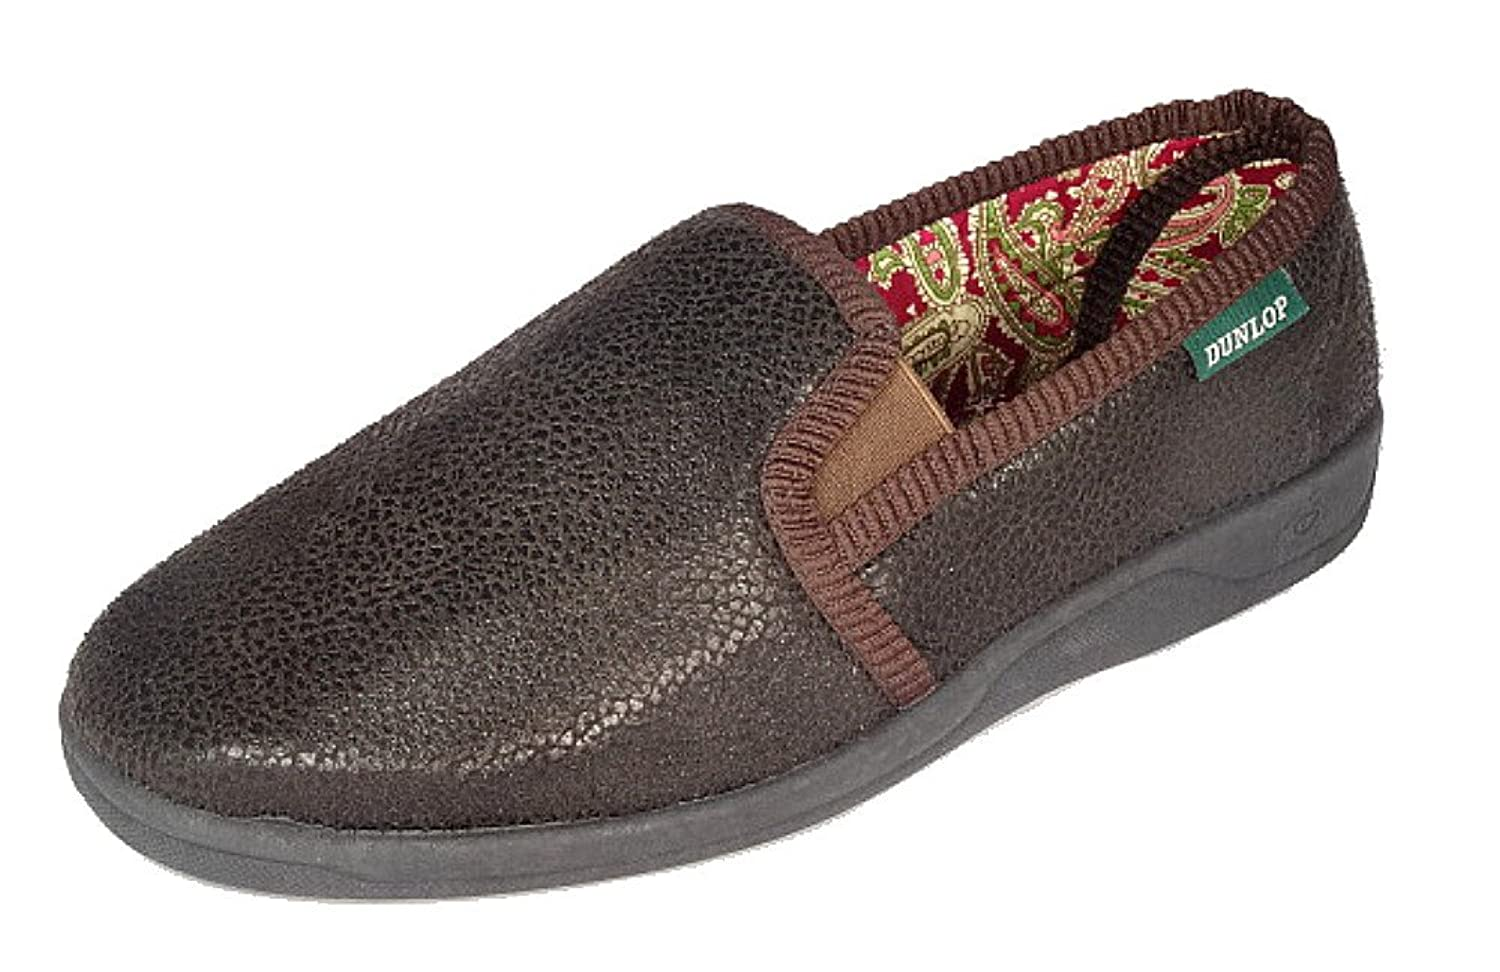 Mens Leather Bedroom Slippers Dr Keller Mens Faux Leather Look Twin Gusset Slippers Good Soles